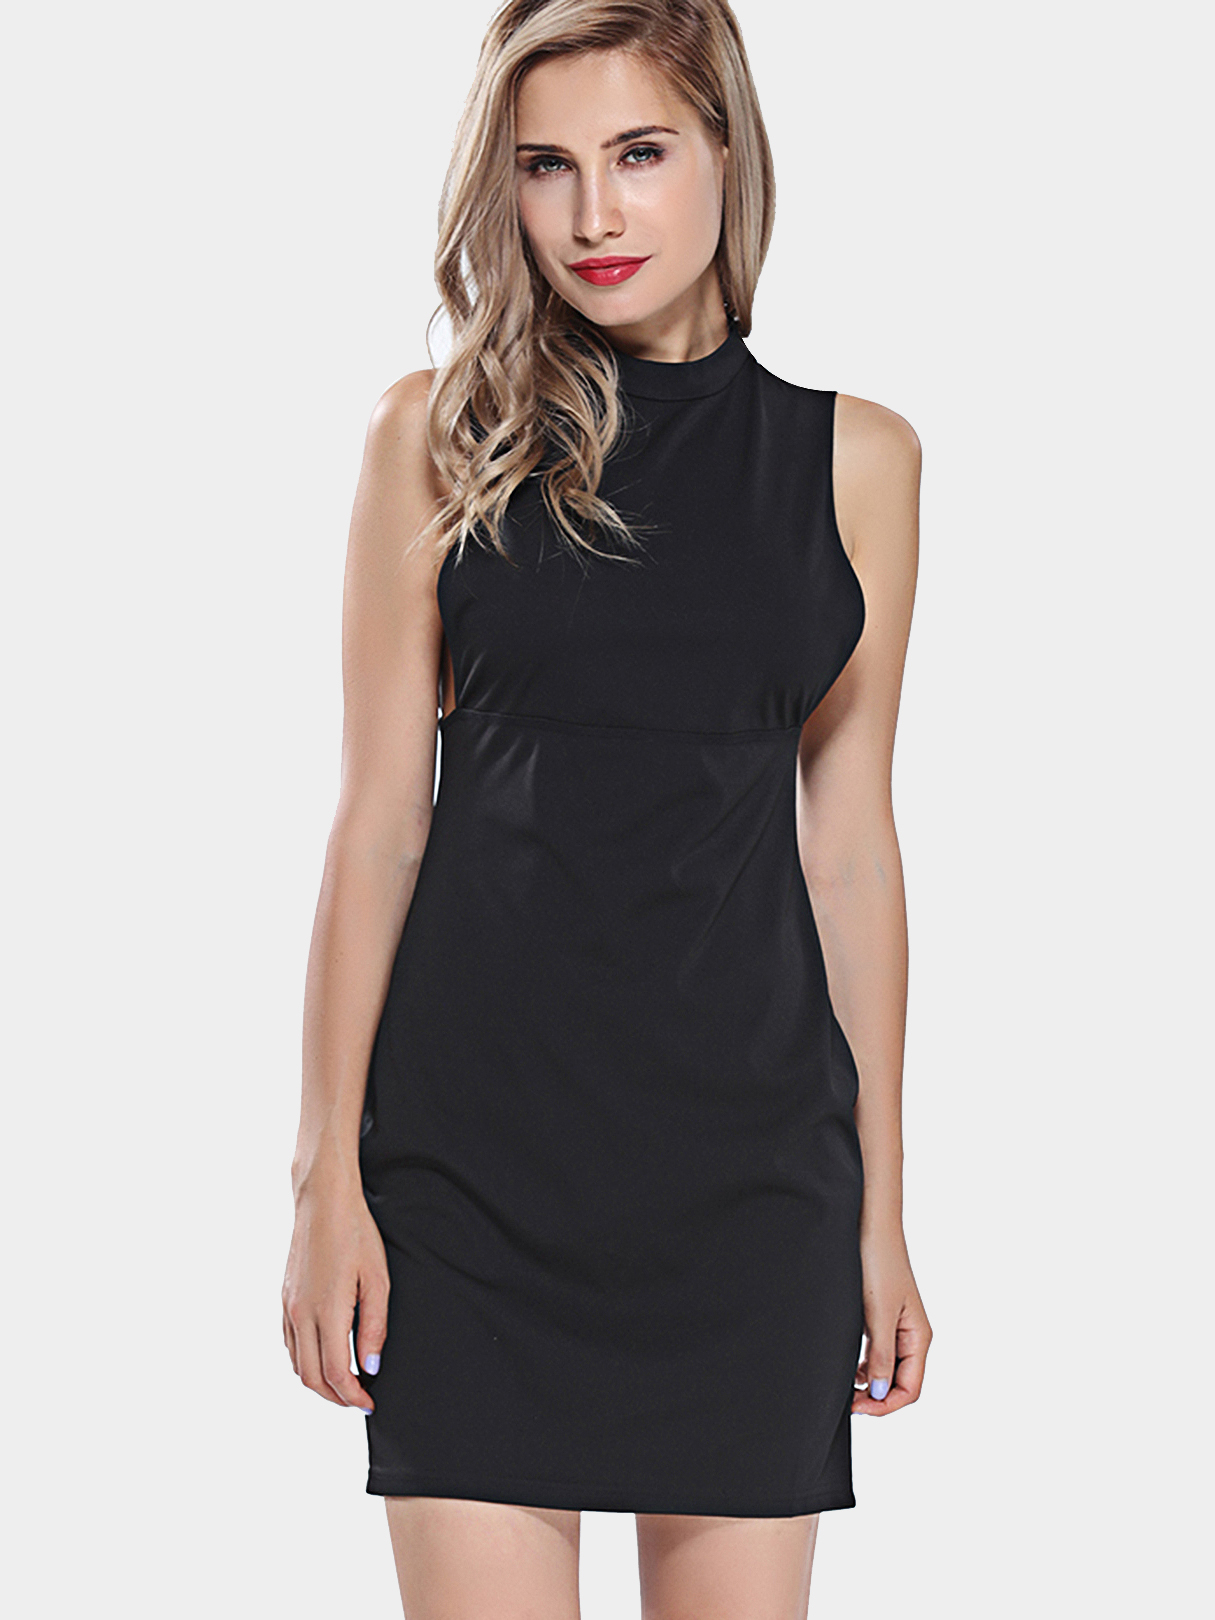 Black Bodycon Dress zip back fit and flare splicing dress